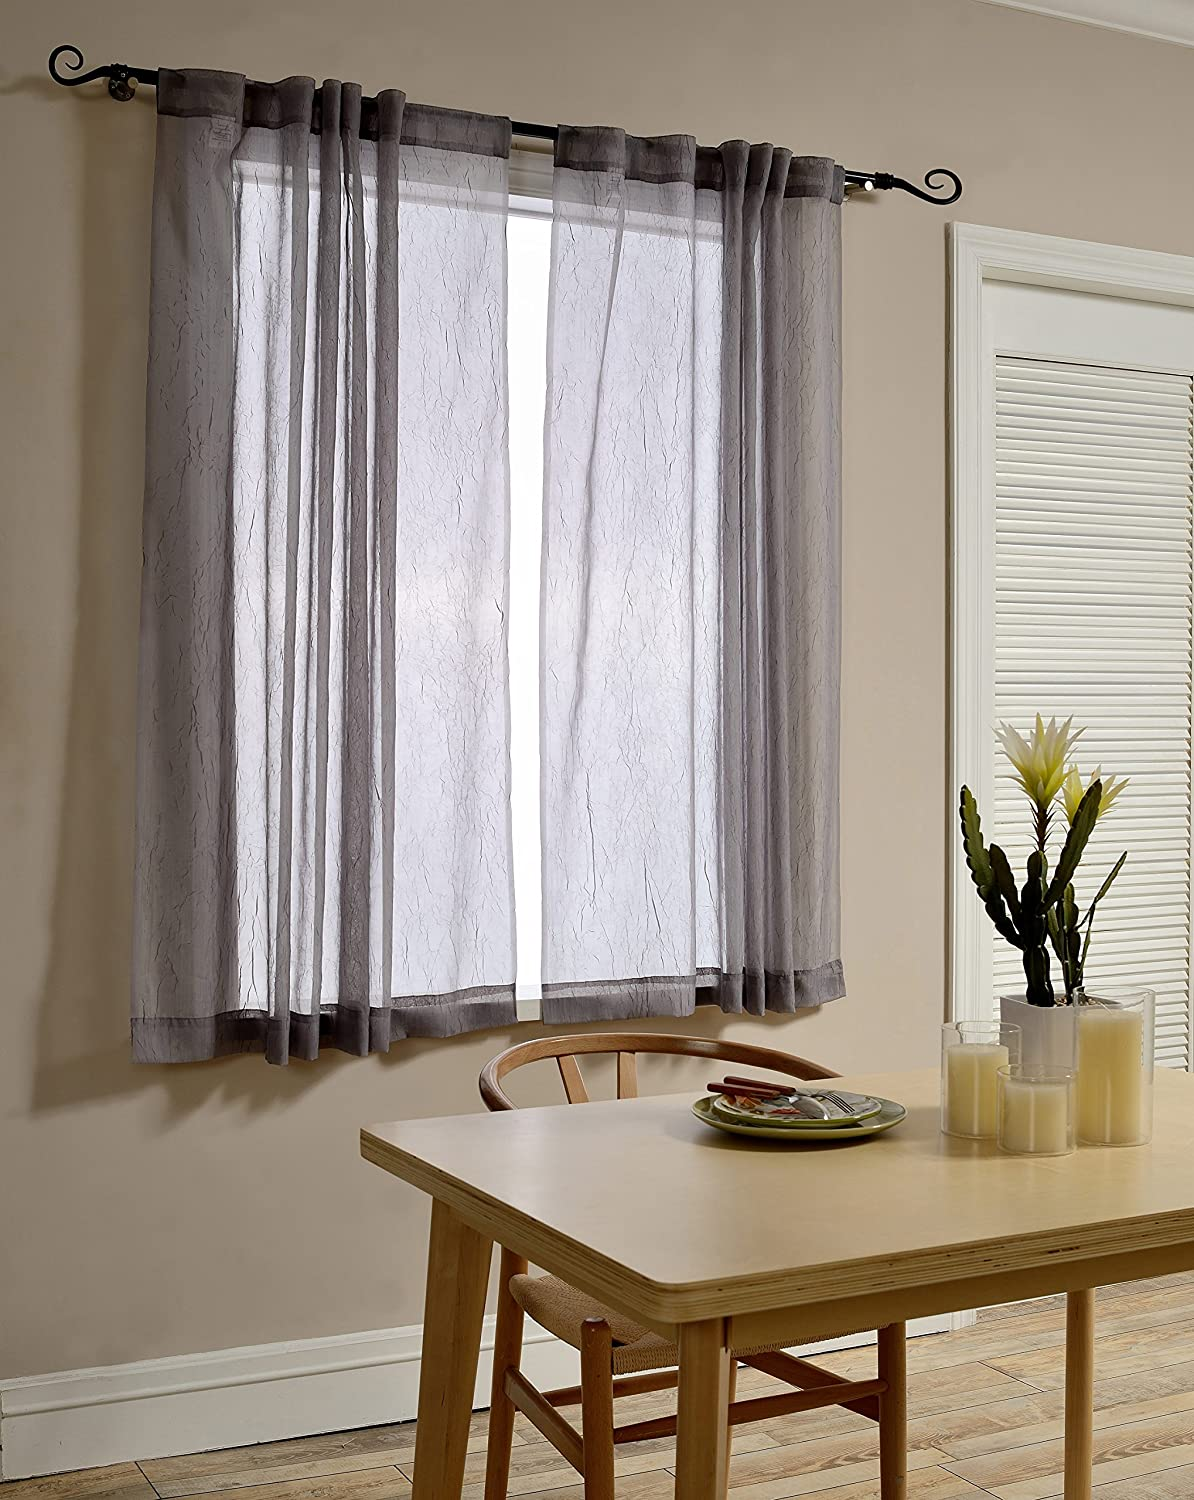 Mysky Home Back Tab and Rod Pocket Window Crushed Voile Sheer Curtains for Office Room, Grey